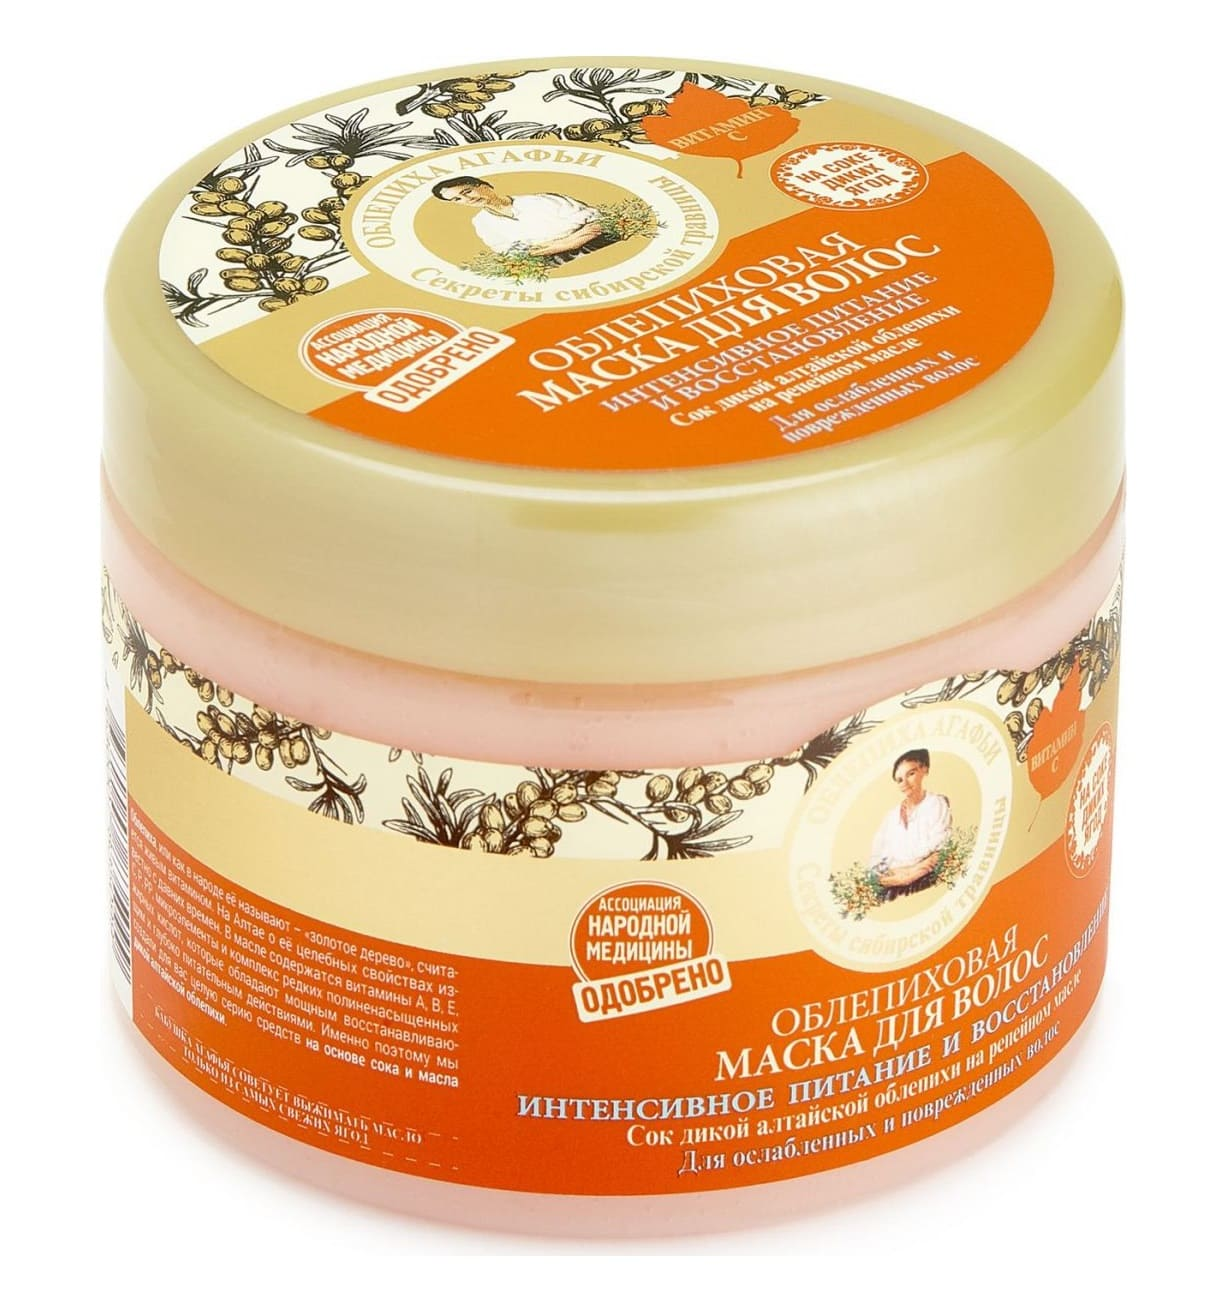 Hair Mask Sea Buckthorn Intensive Nutrition and Recovery